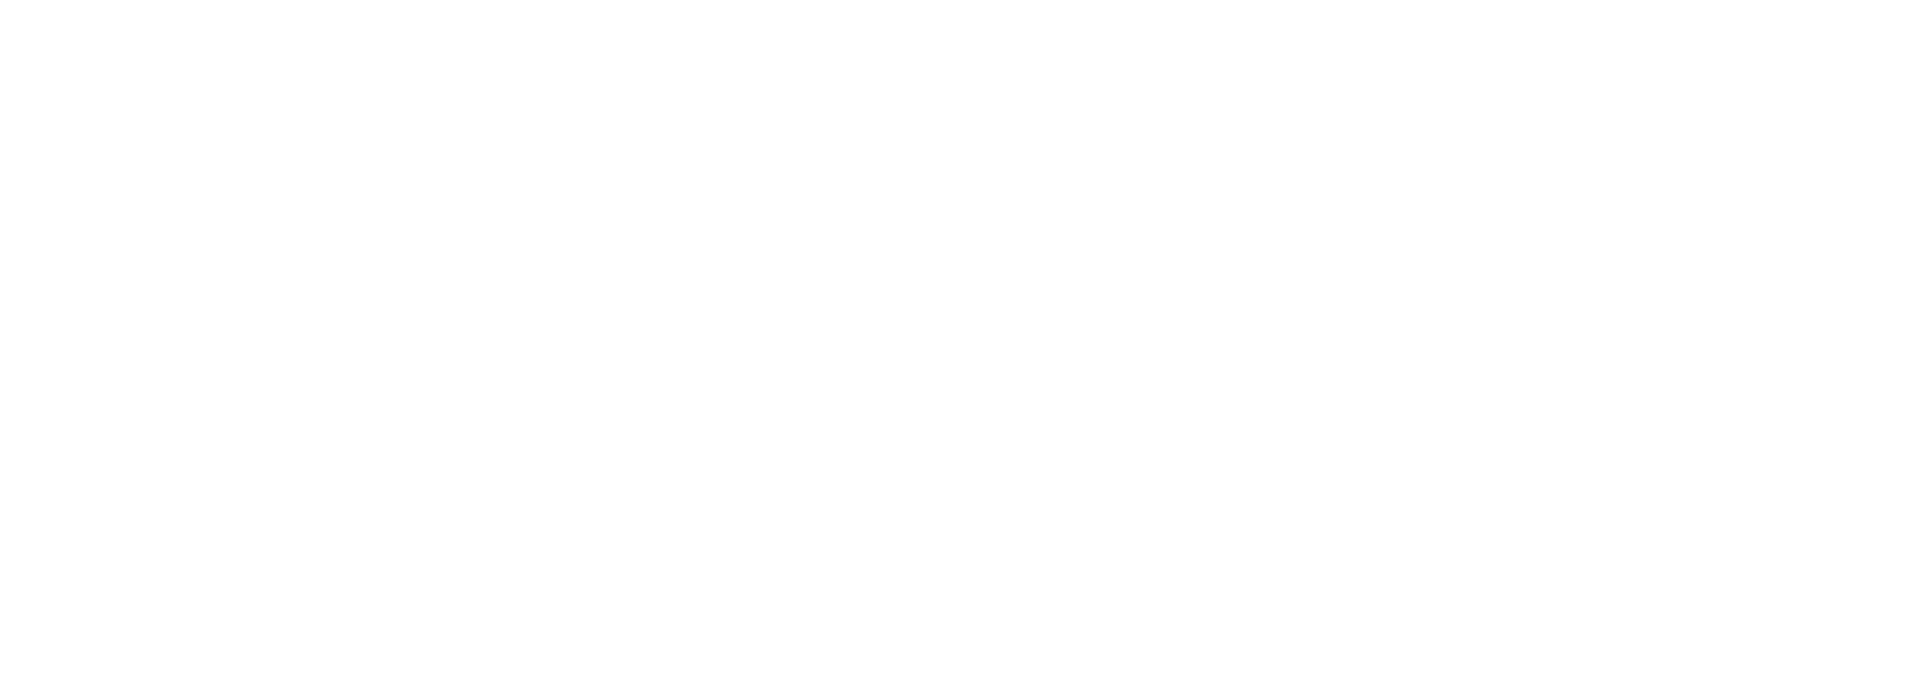 Sundered_logoFINAL_5k_WHITE